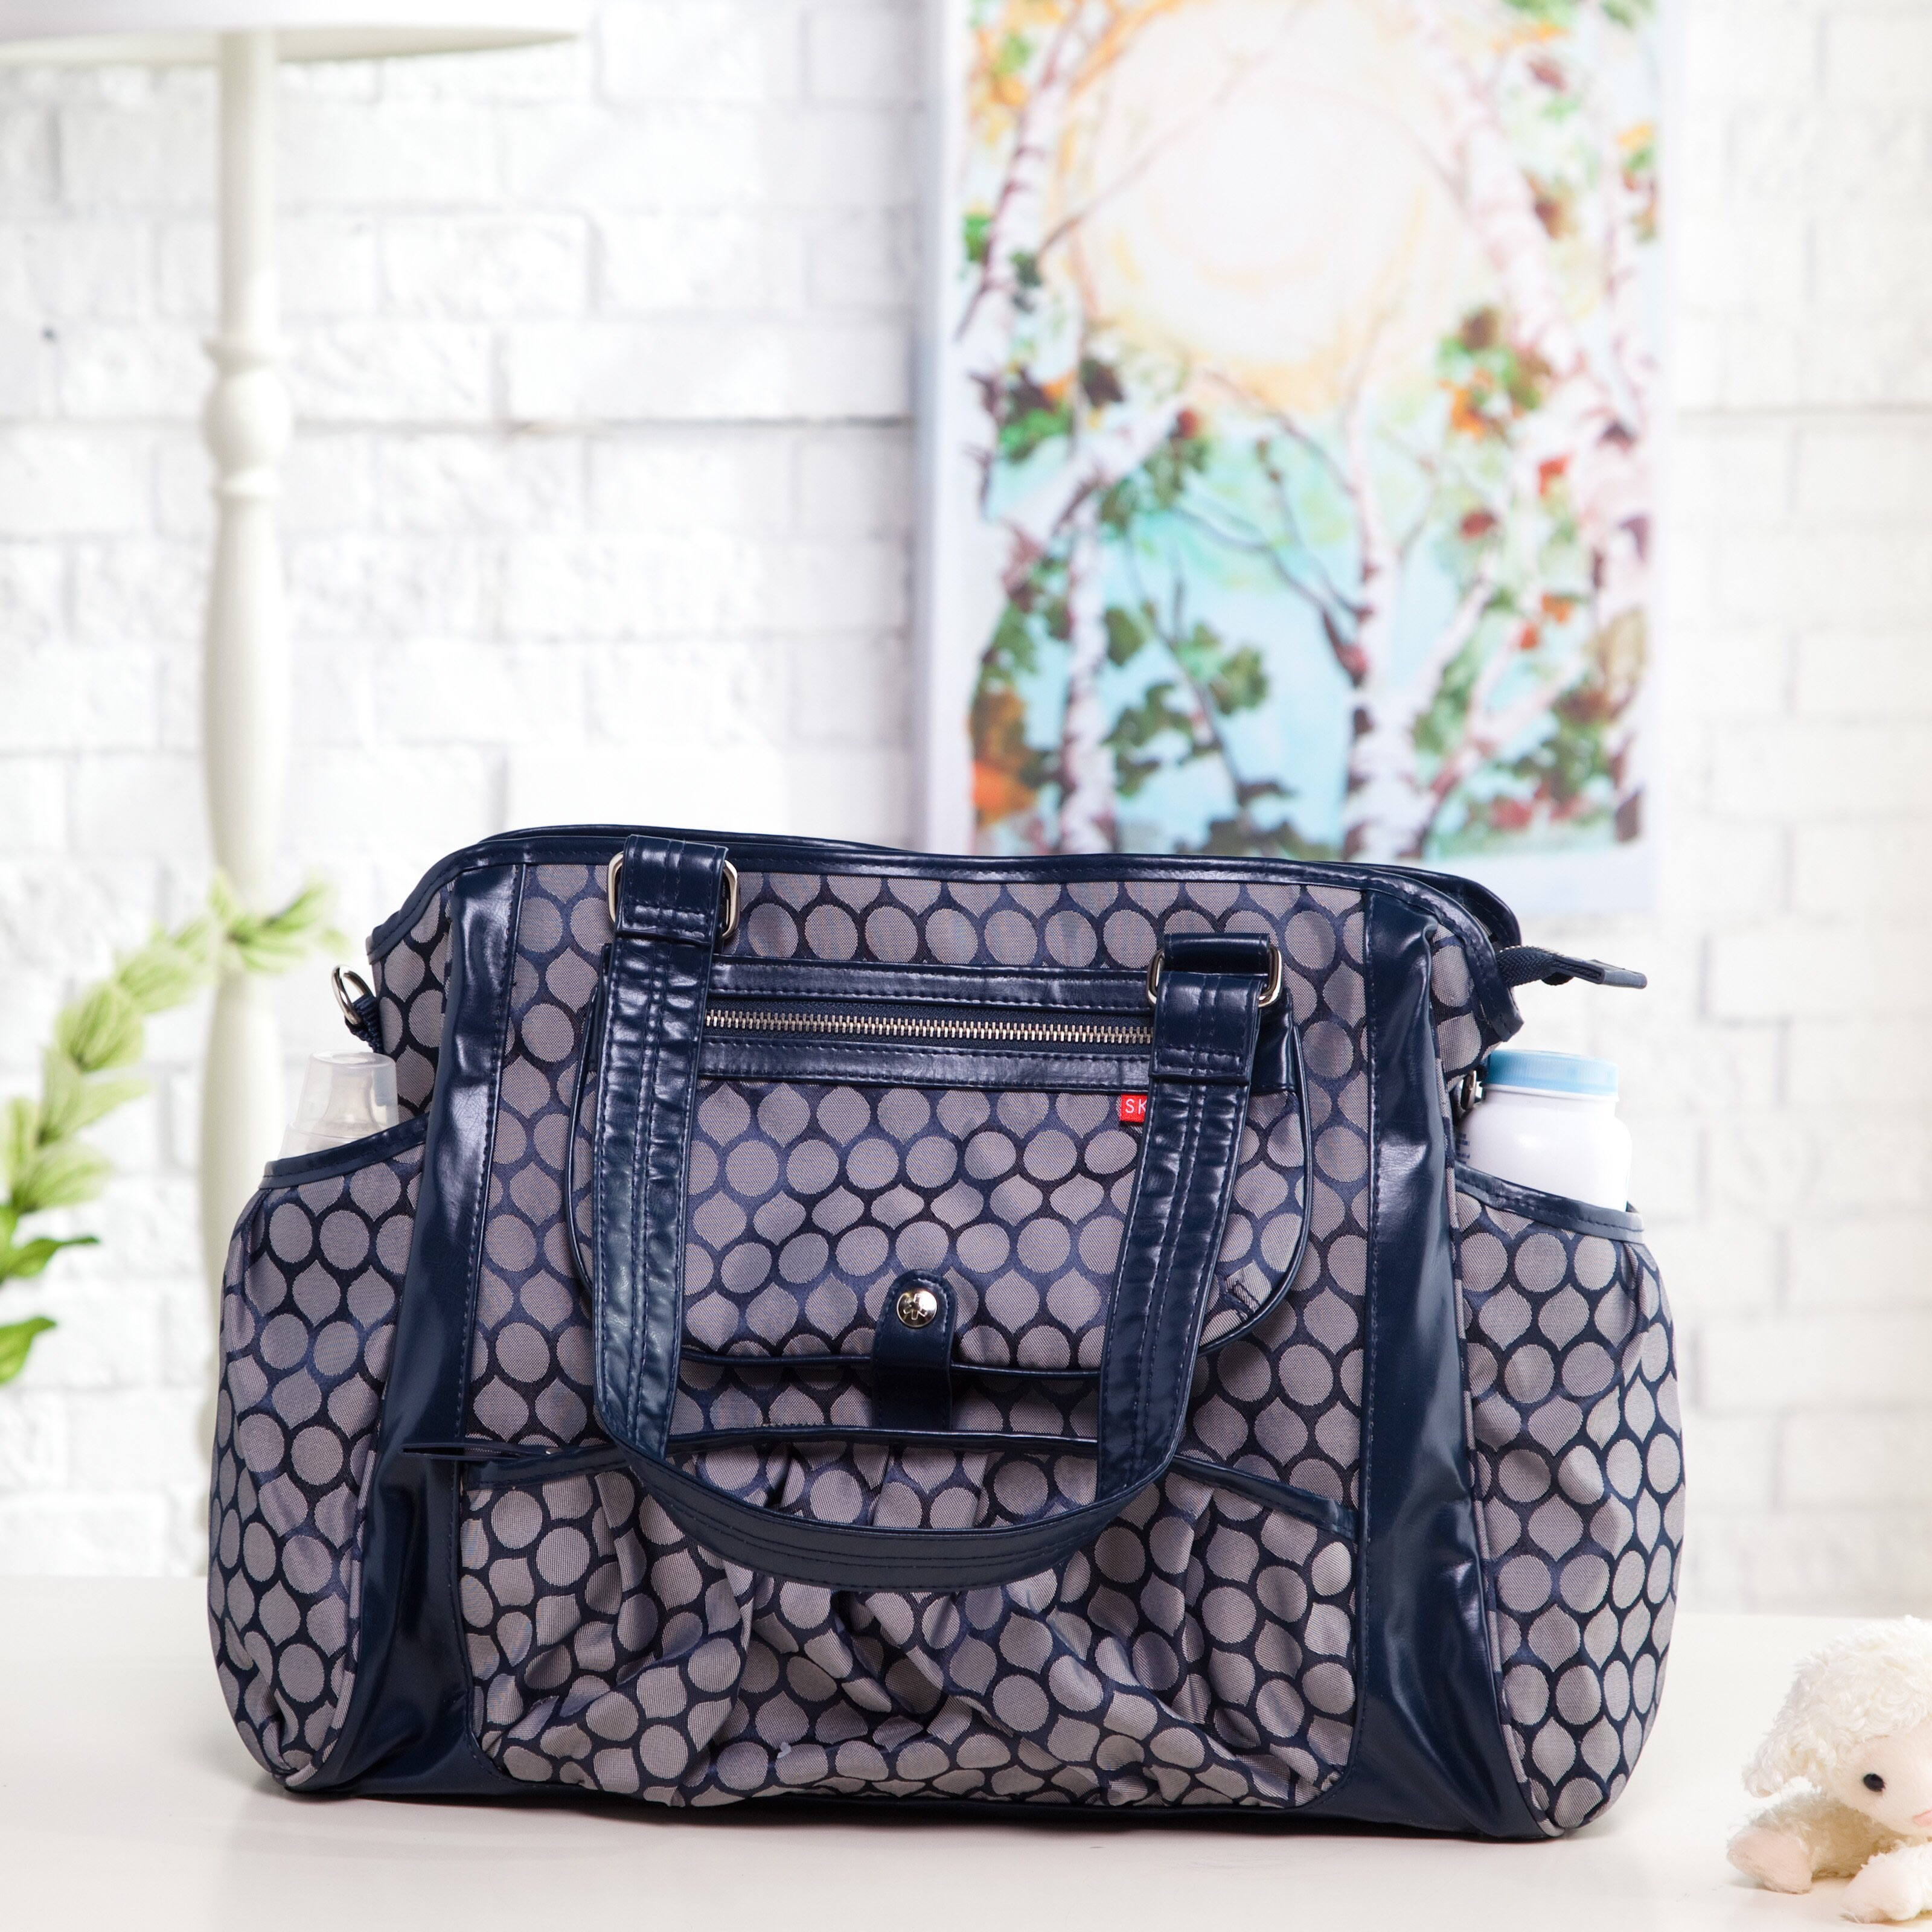 Smashing Diaper Bags Page Bump Petunia Pickle Bottom Outlet Store Petunia Pickle Bottom Outlet Locations baby Petunia Pickle Bottom Outlet